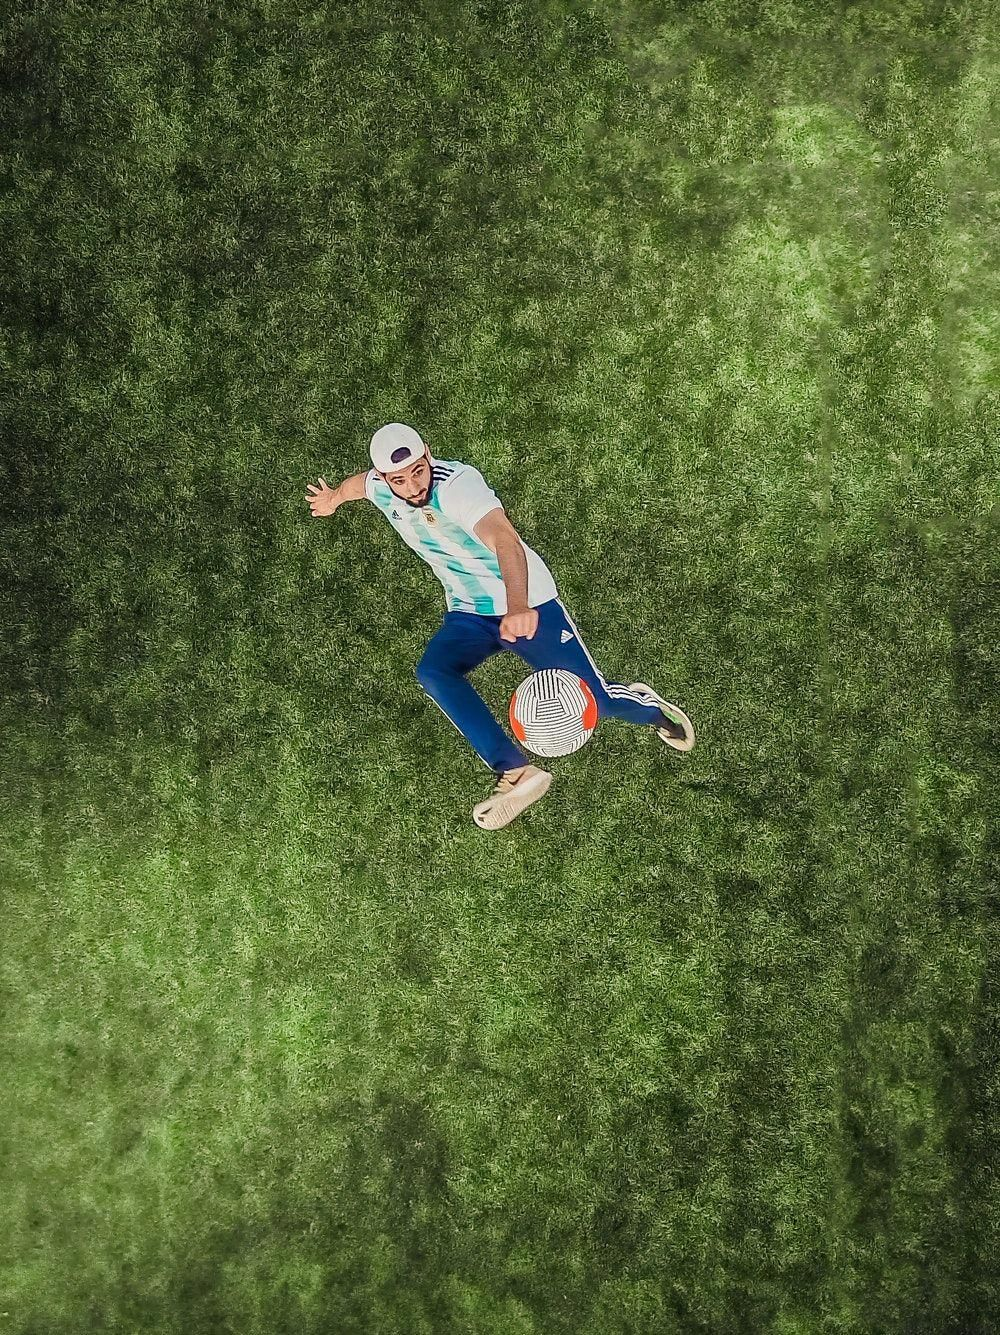 Aerial View Of Man Playing Soccer Ball On Grass Sports Sports